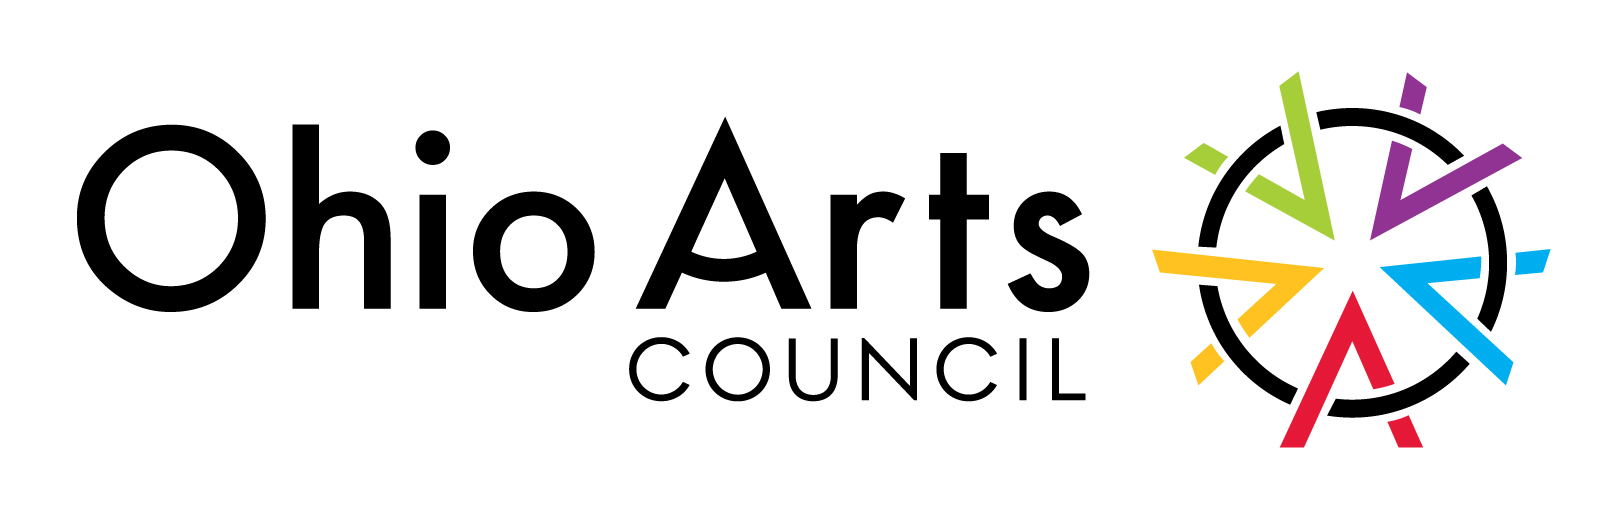 ohio-arts-council.jpg